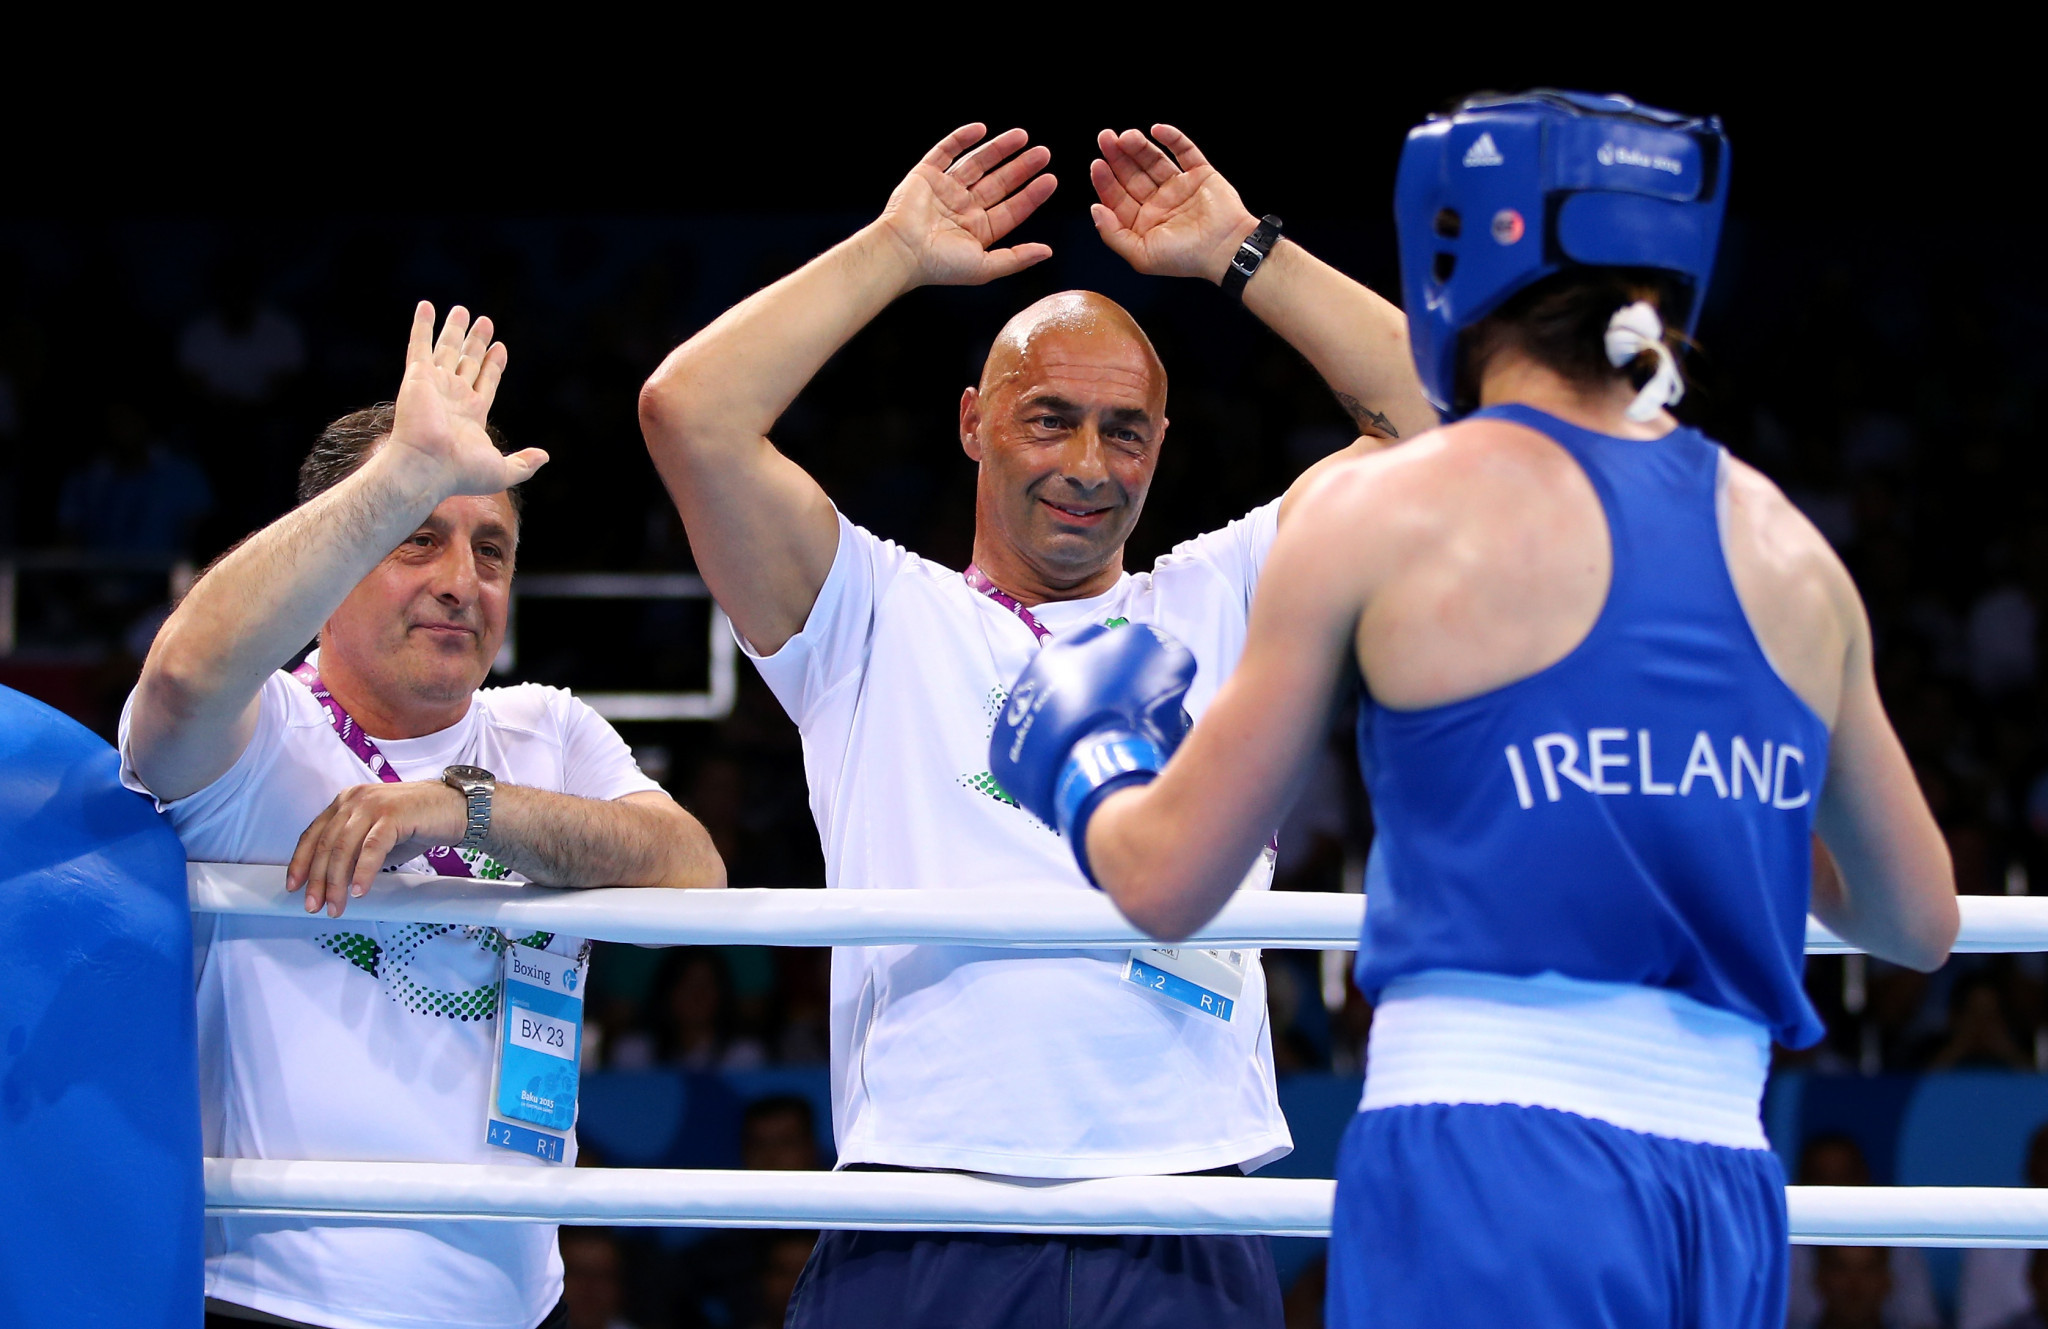 Man shot dead in gym founded by Irish champion boxer Taylor's father